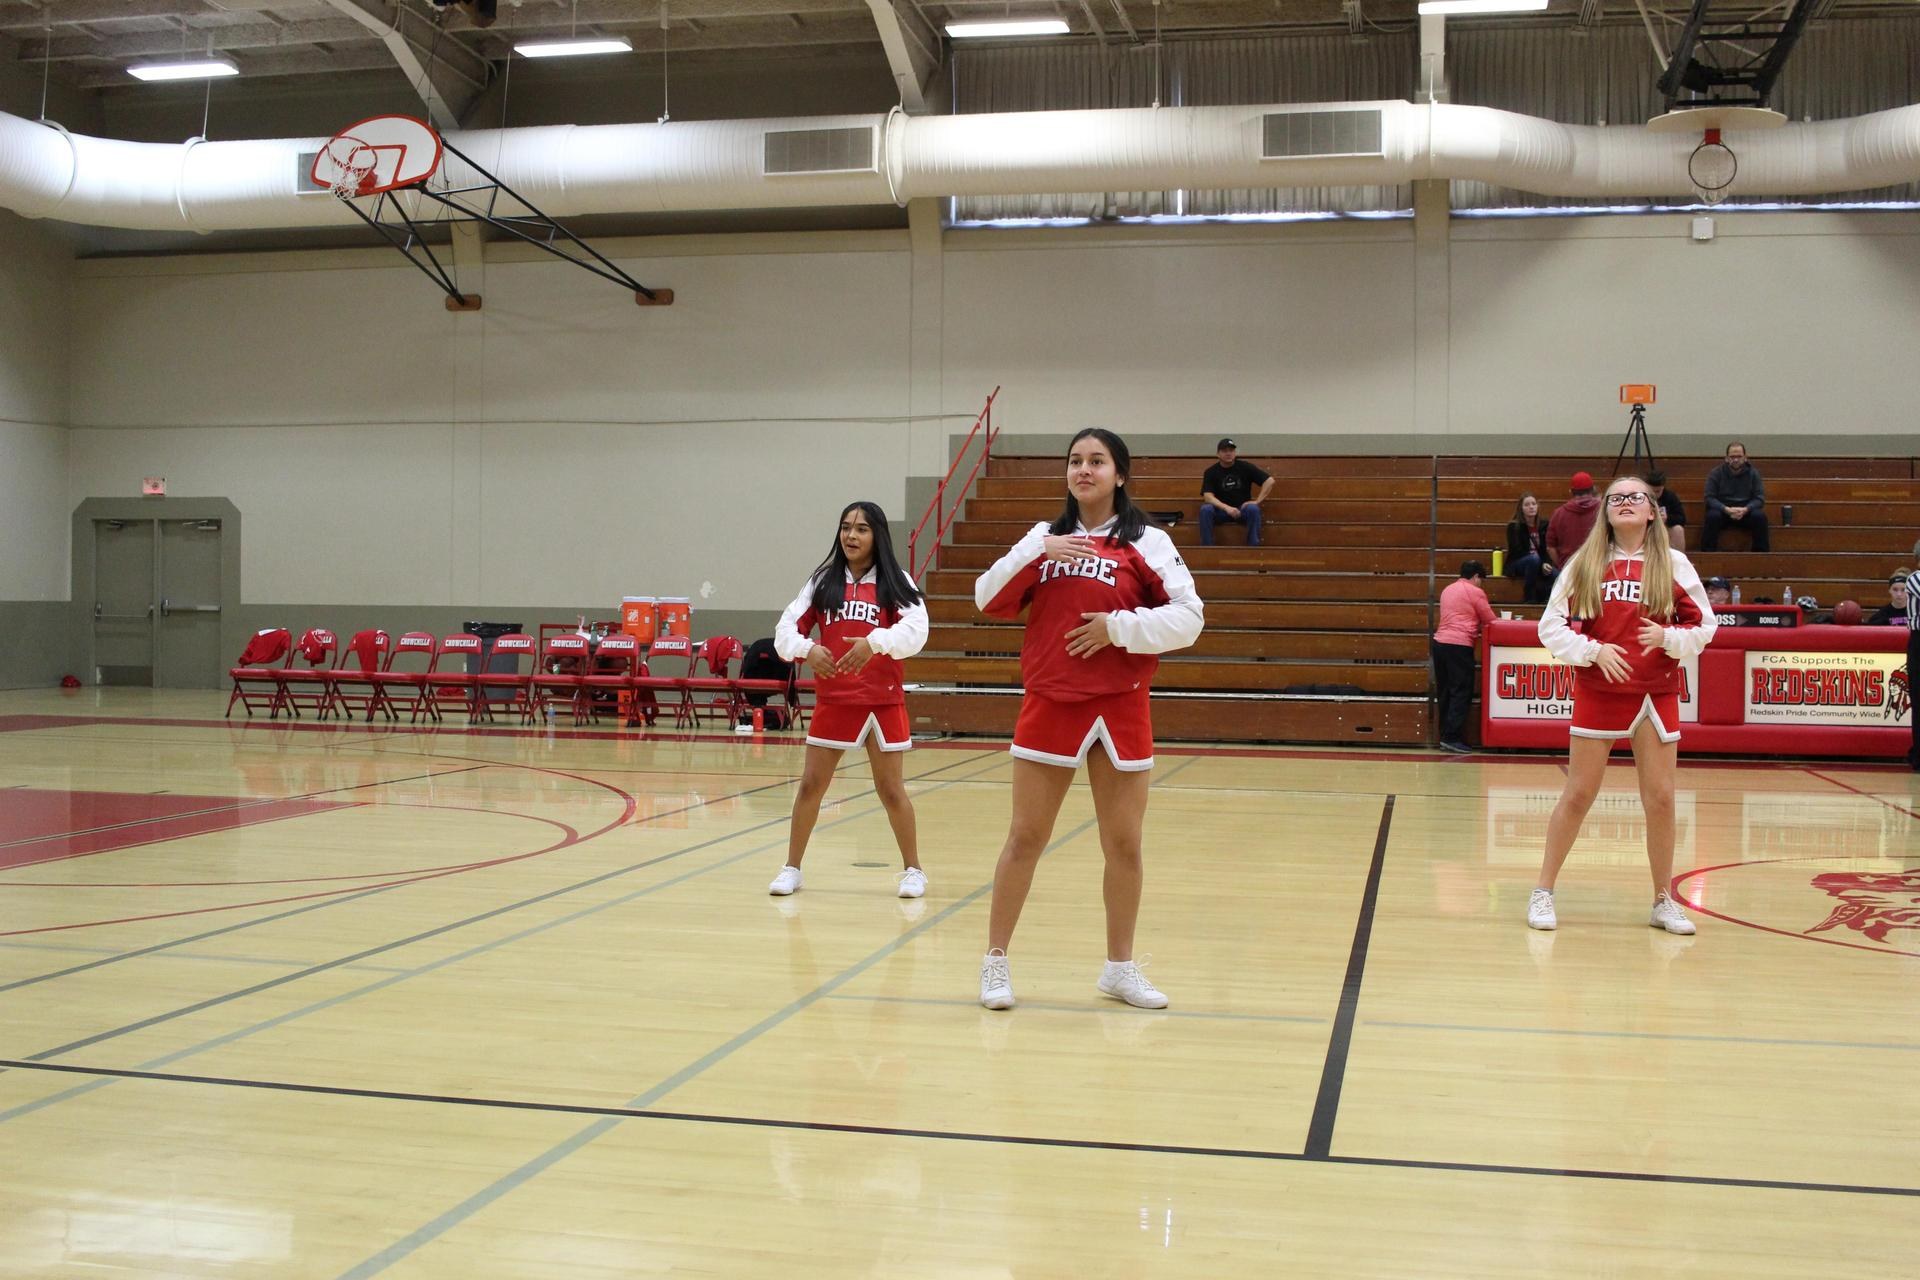 Junior Varsity Cheer at Los Banos basketball game